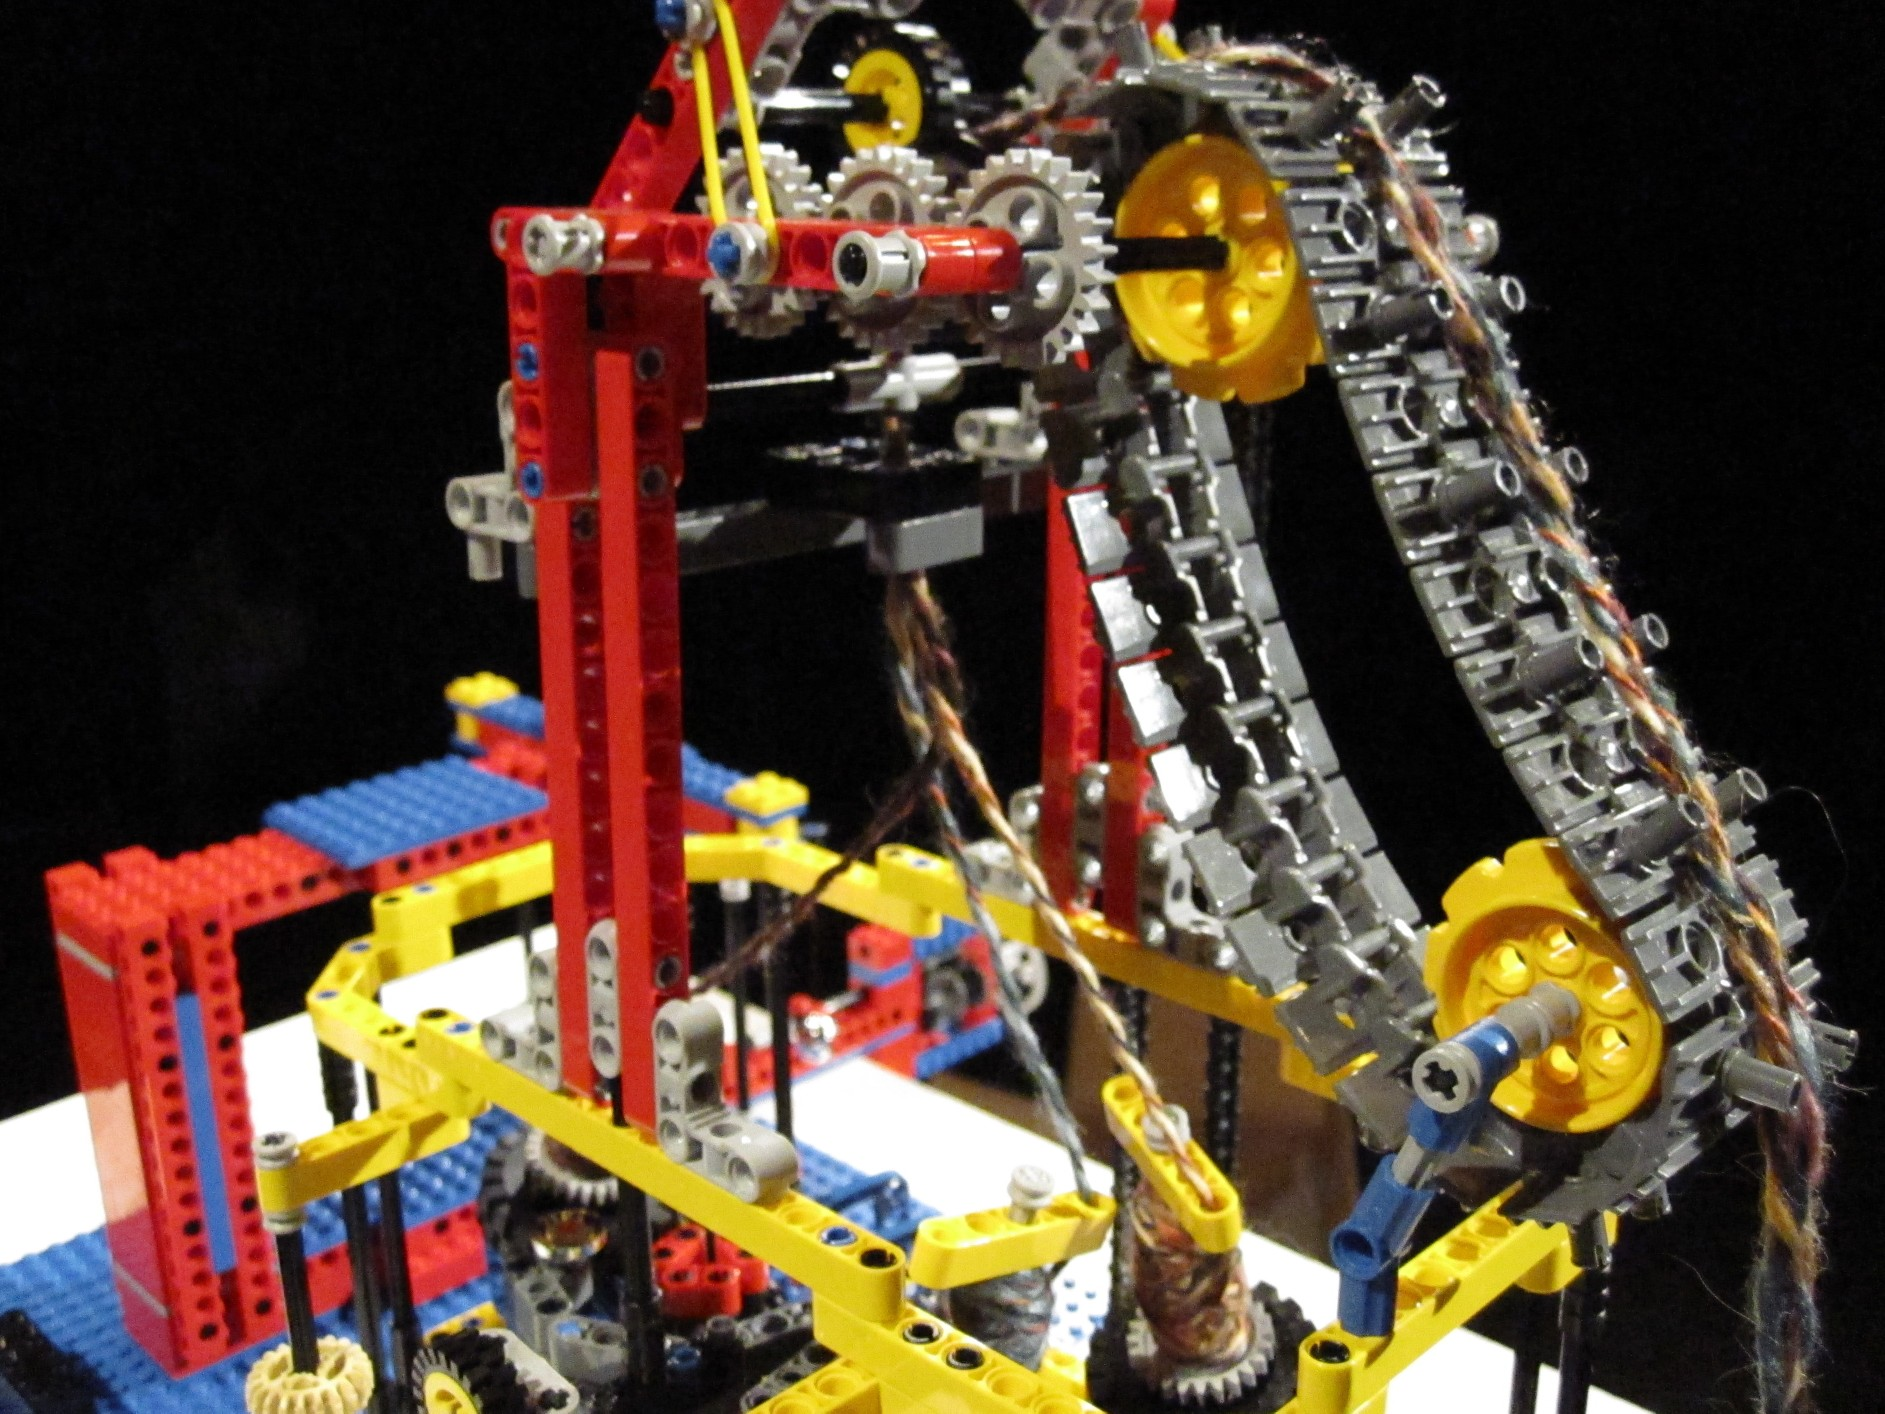 Plaiting machine made of LEGO by Alex Allmont Oxford, 2010